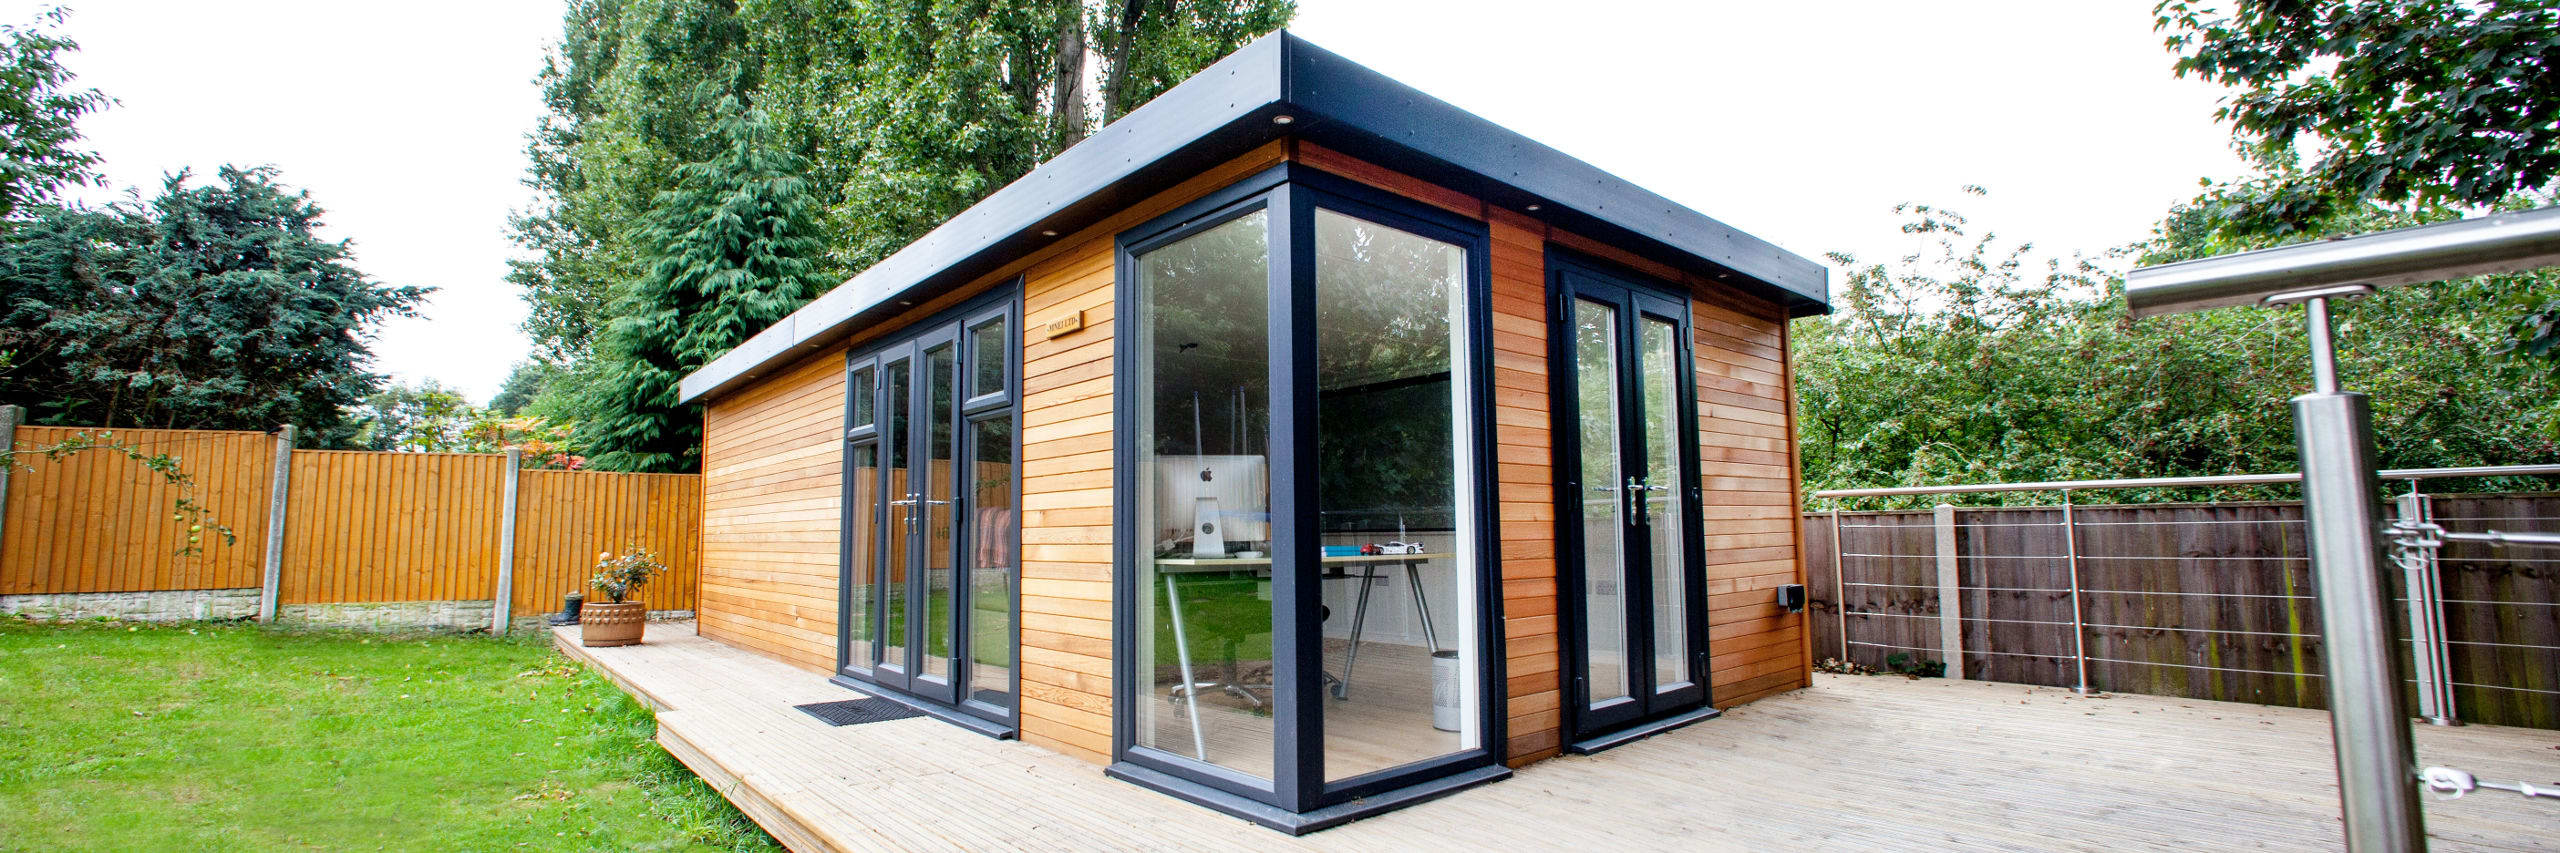 Wooden garden rooms garden offices cedar garden studios uk for Timber garden rooms